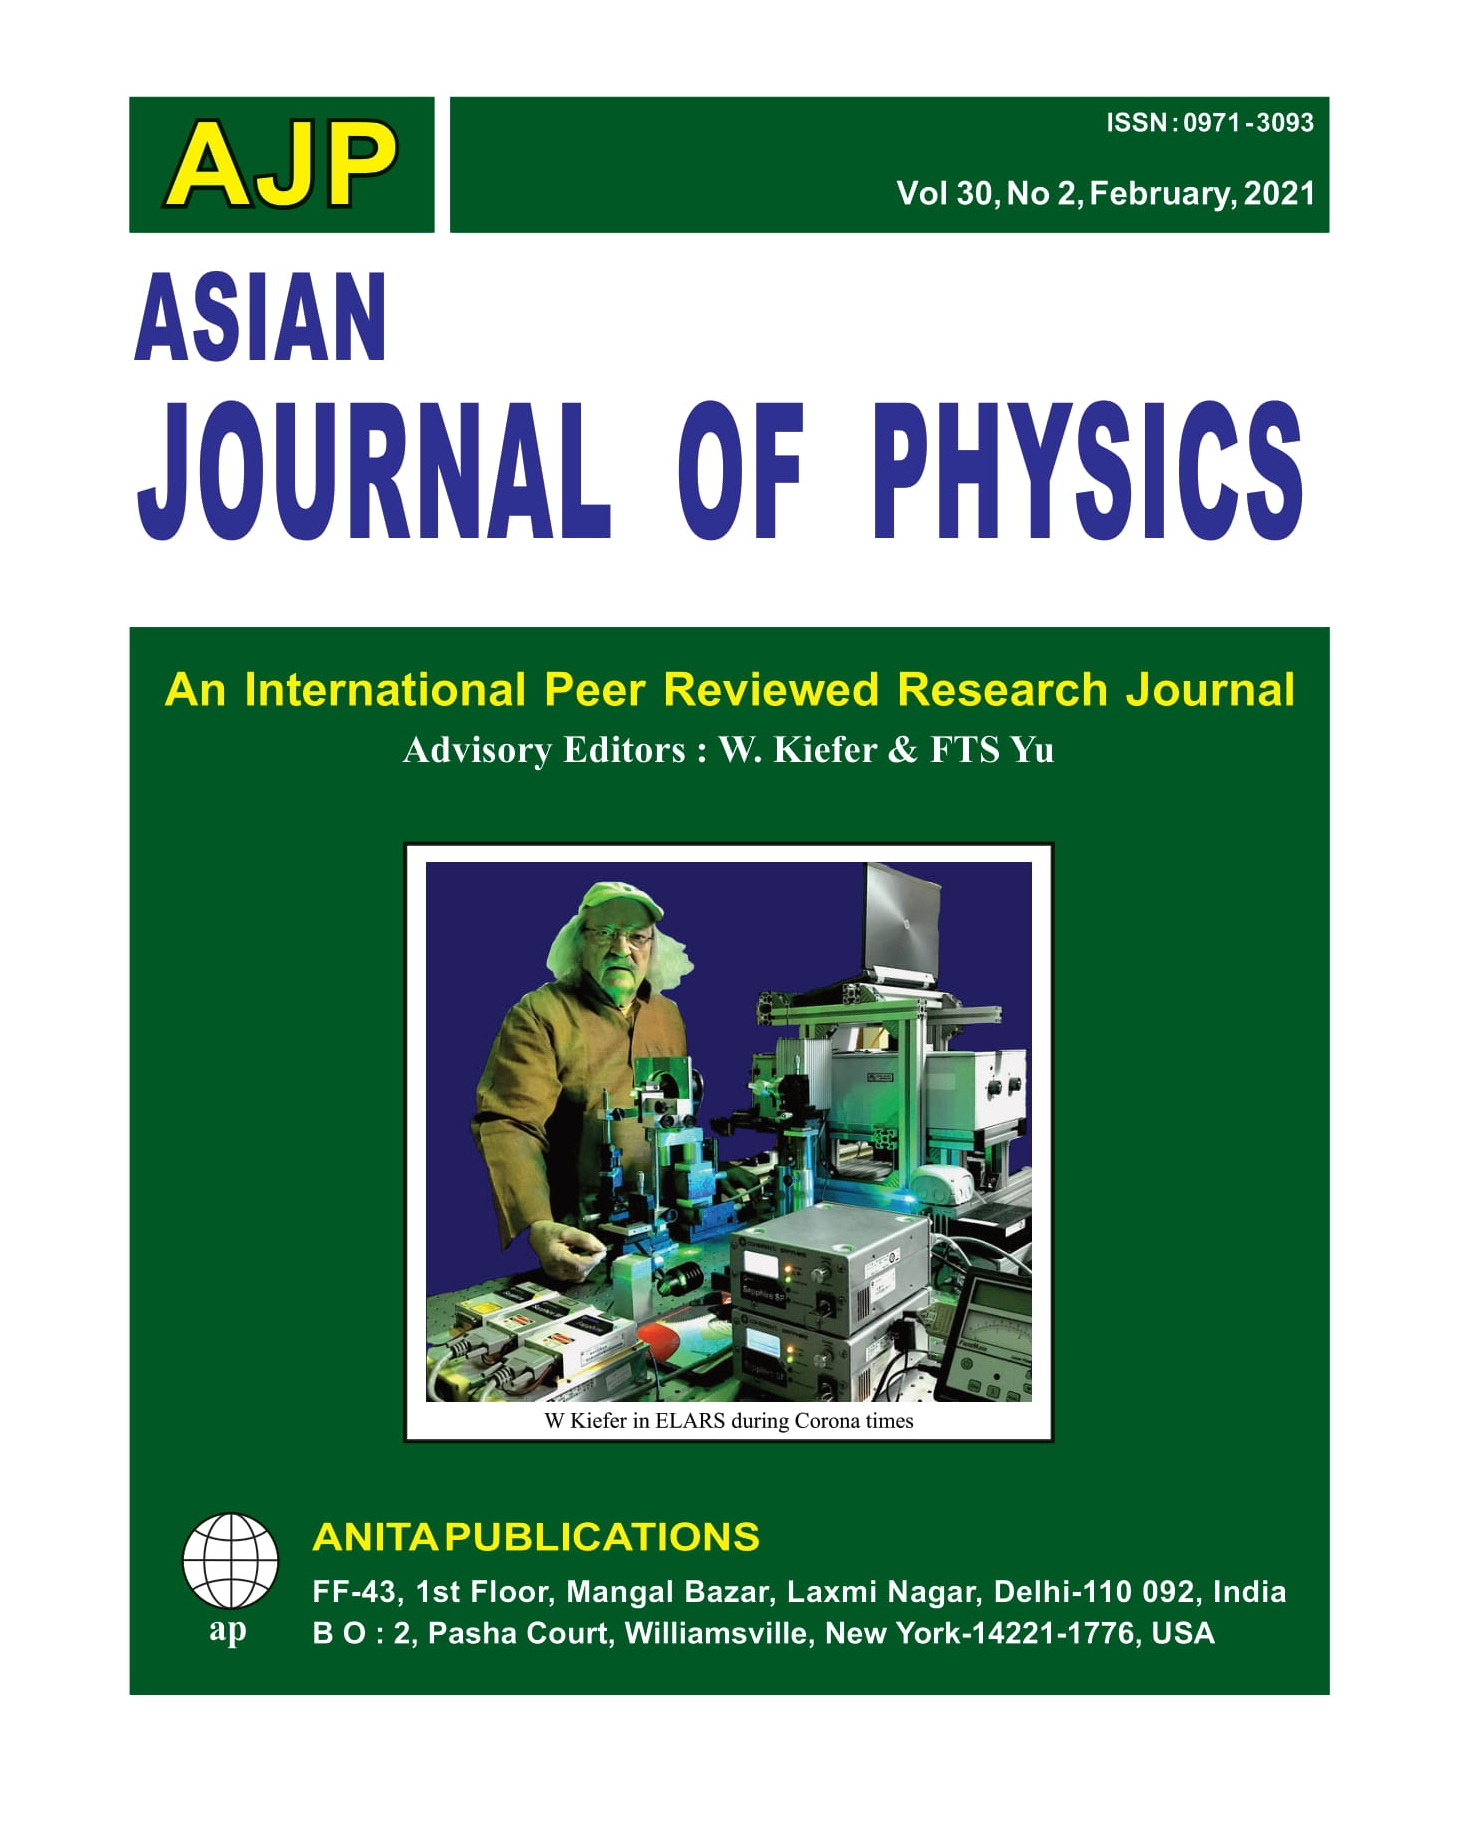 AJP Vol 30 No 2, 2021